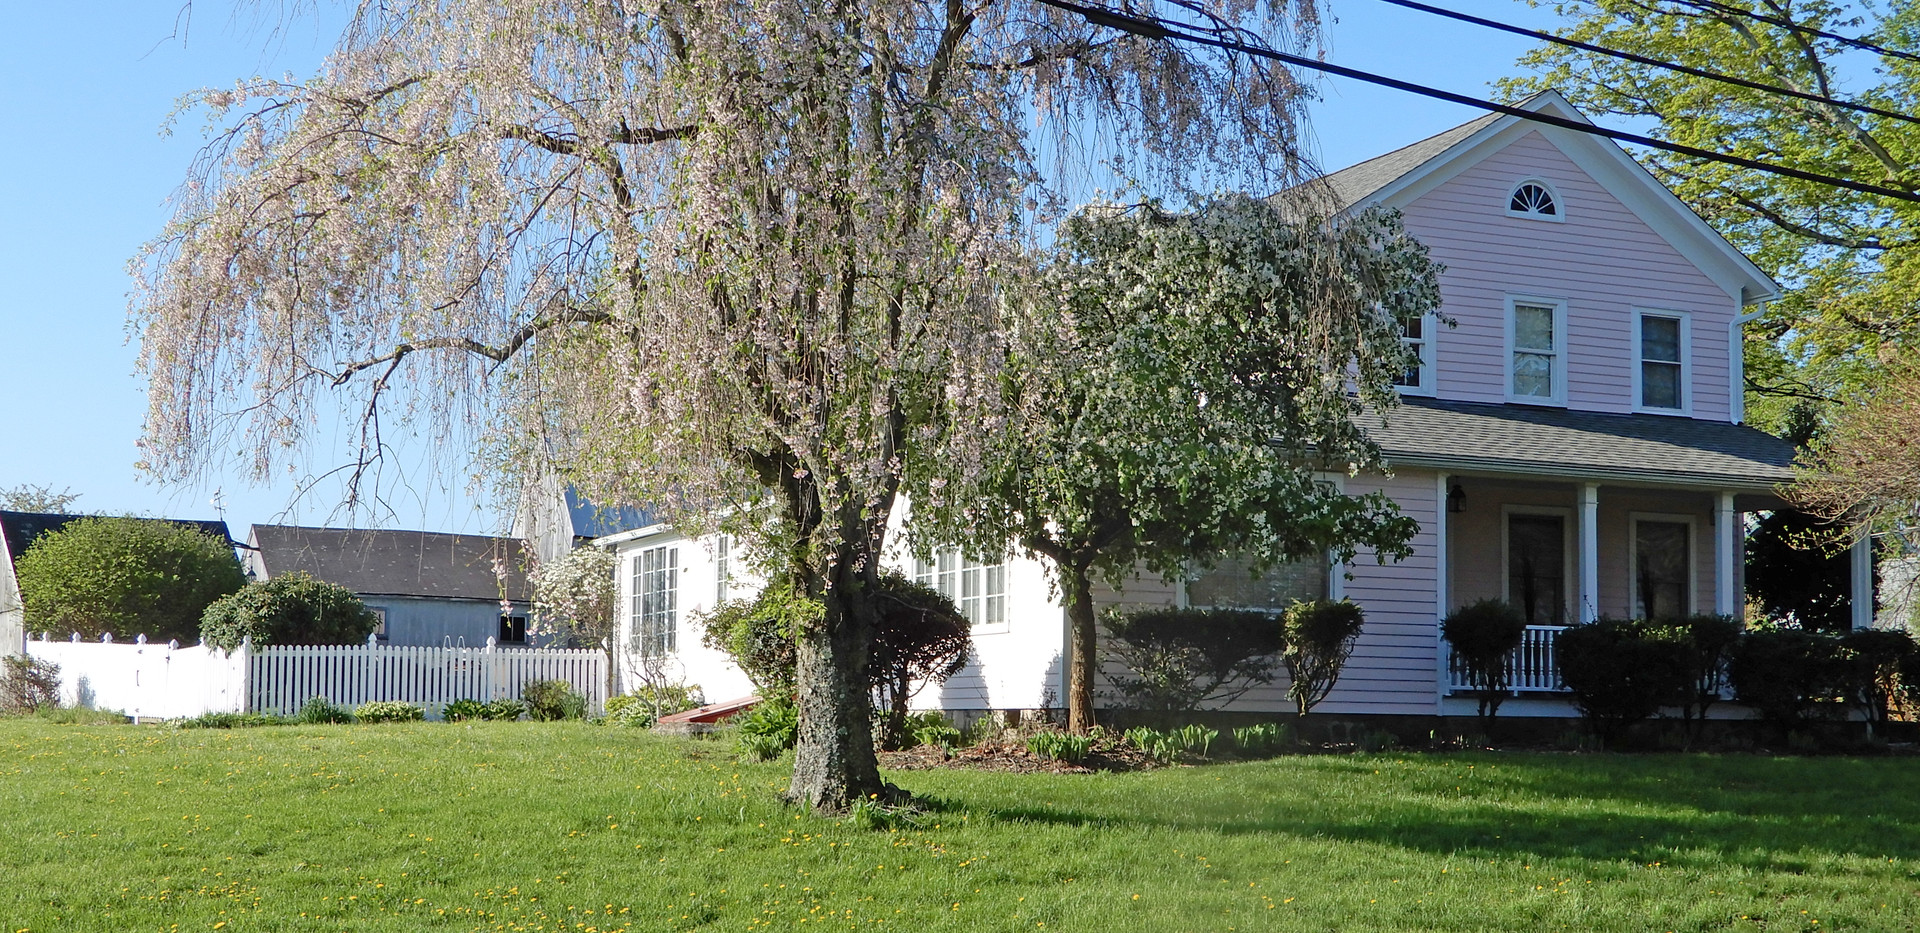 Blue Jay Orchards - Rental Home